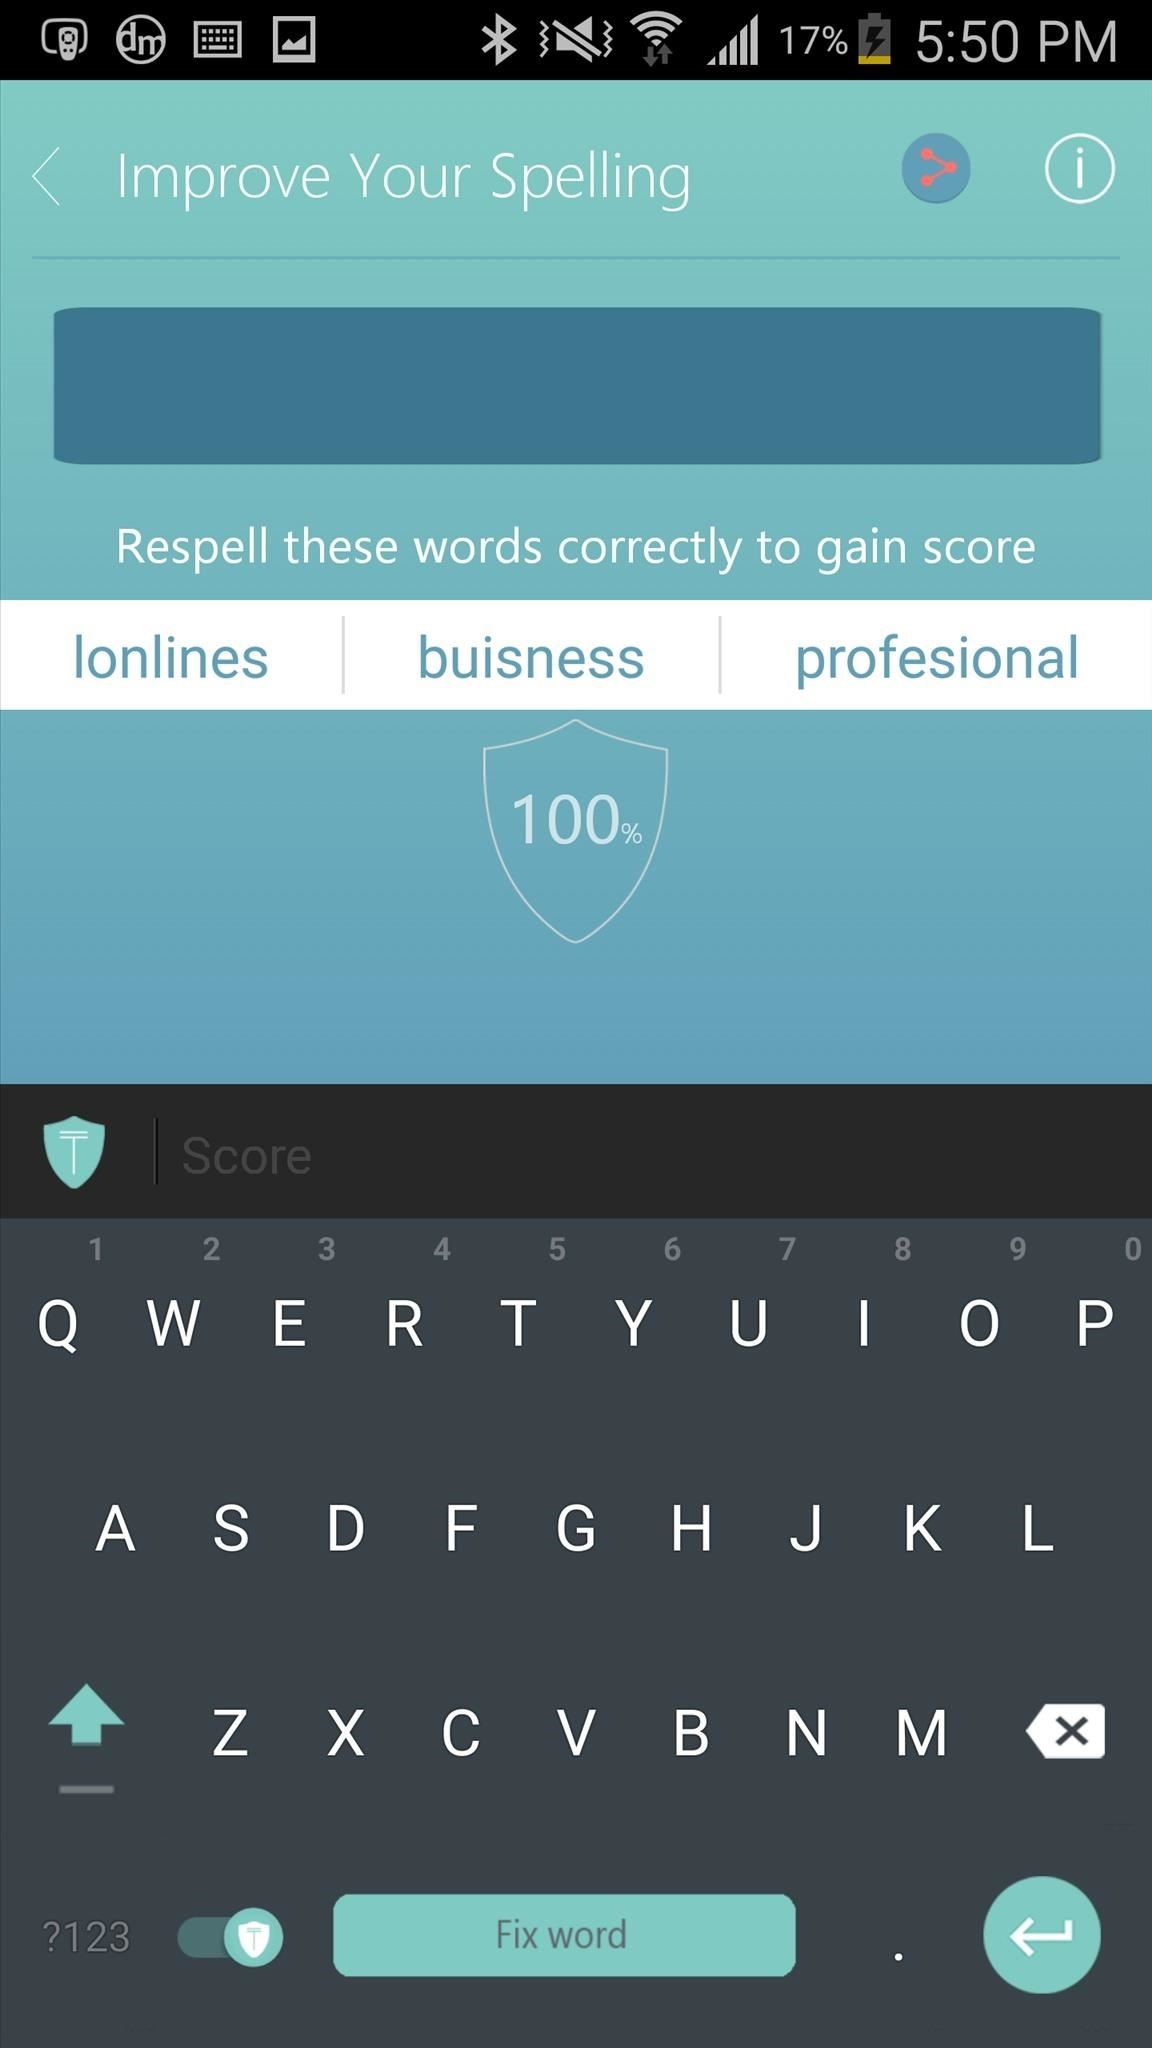 Autocorrect Only Fixes Mistakes, but This Android Keyboard Helps Prevent Them